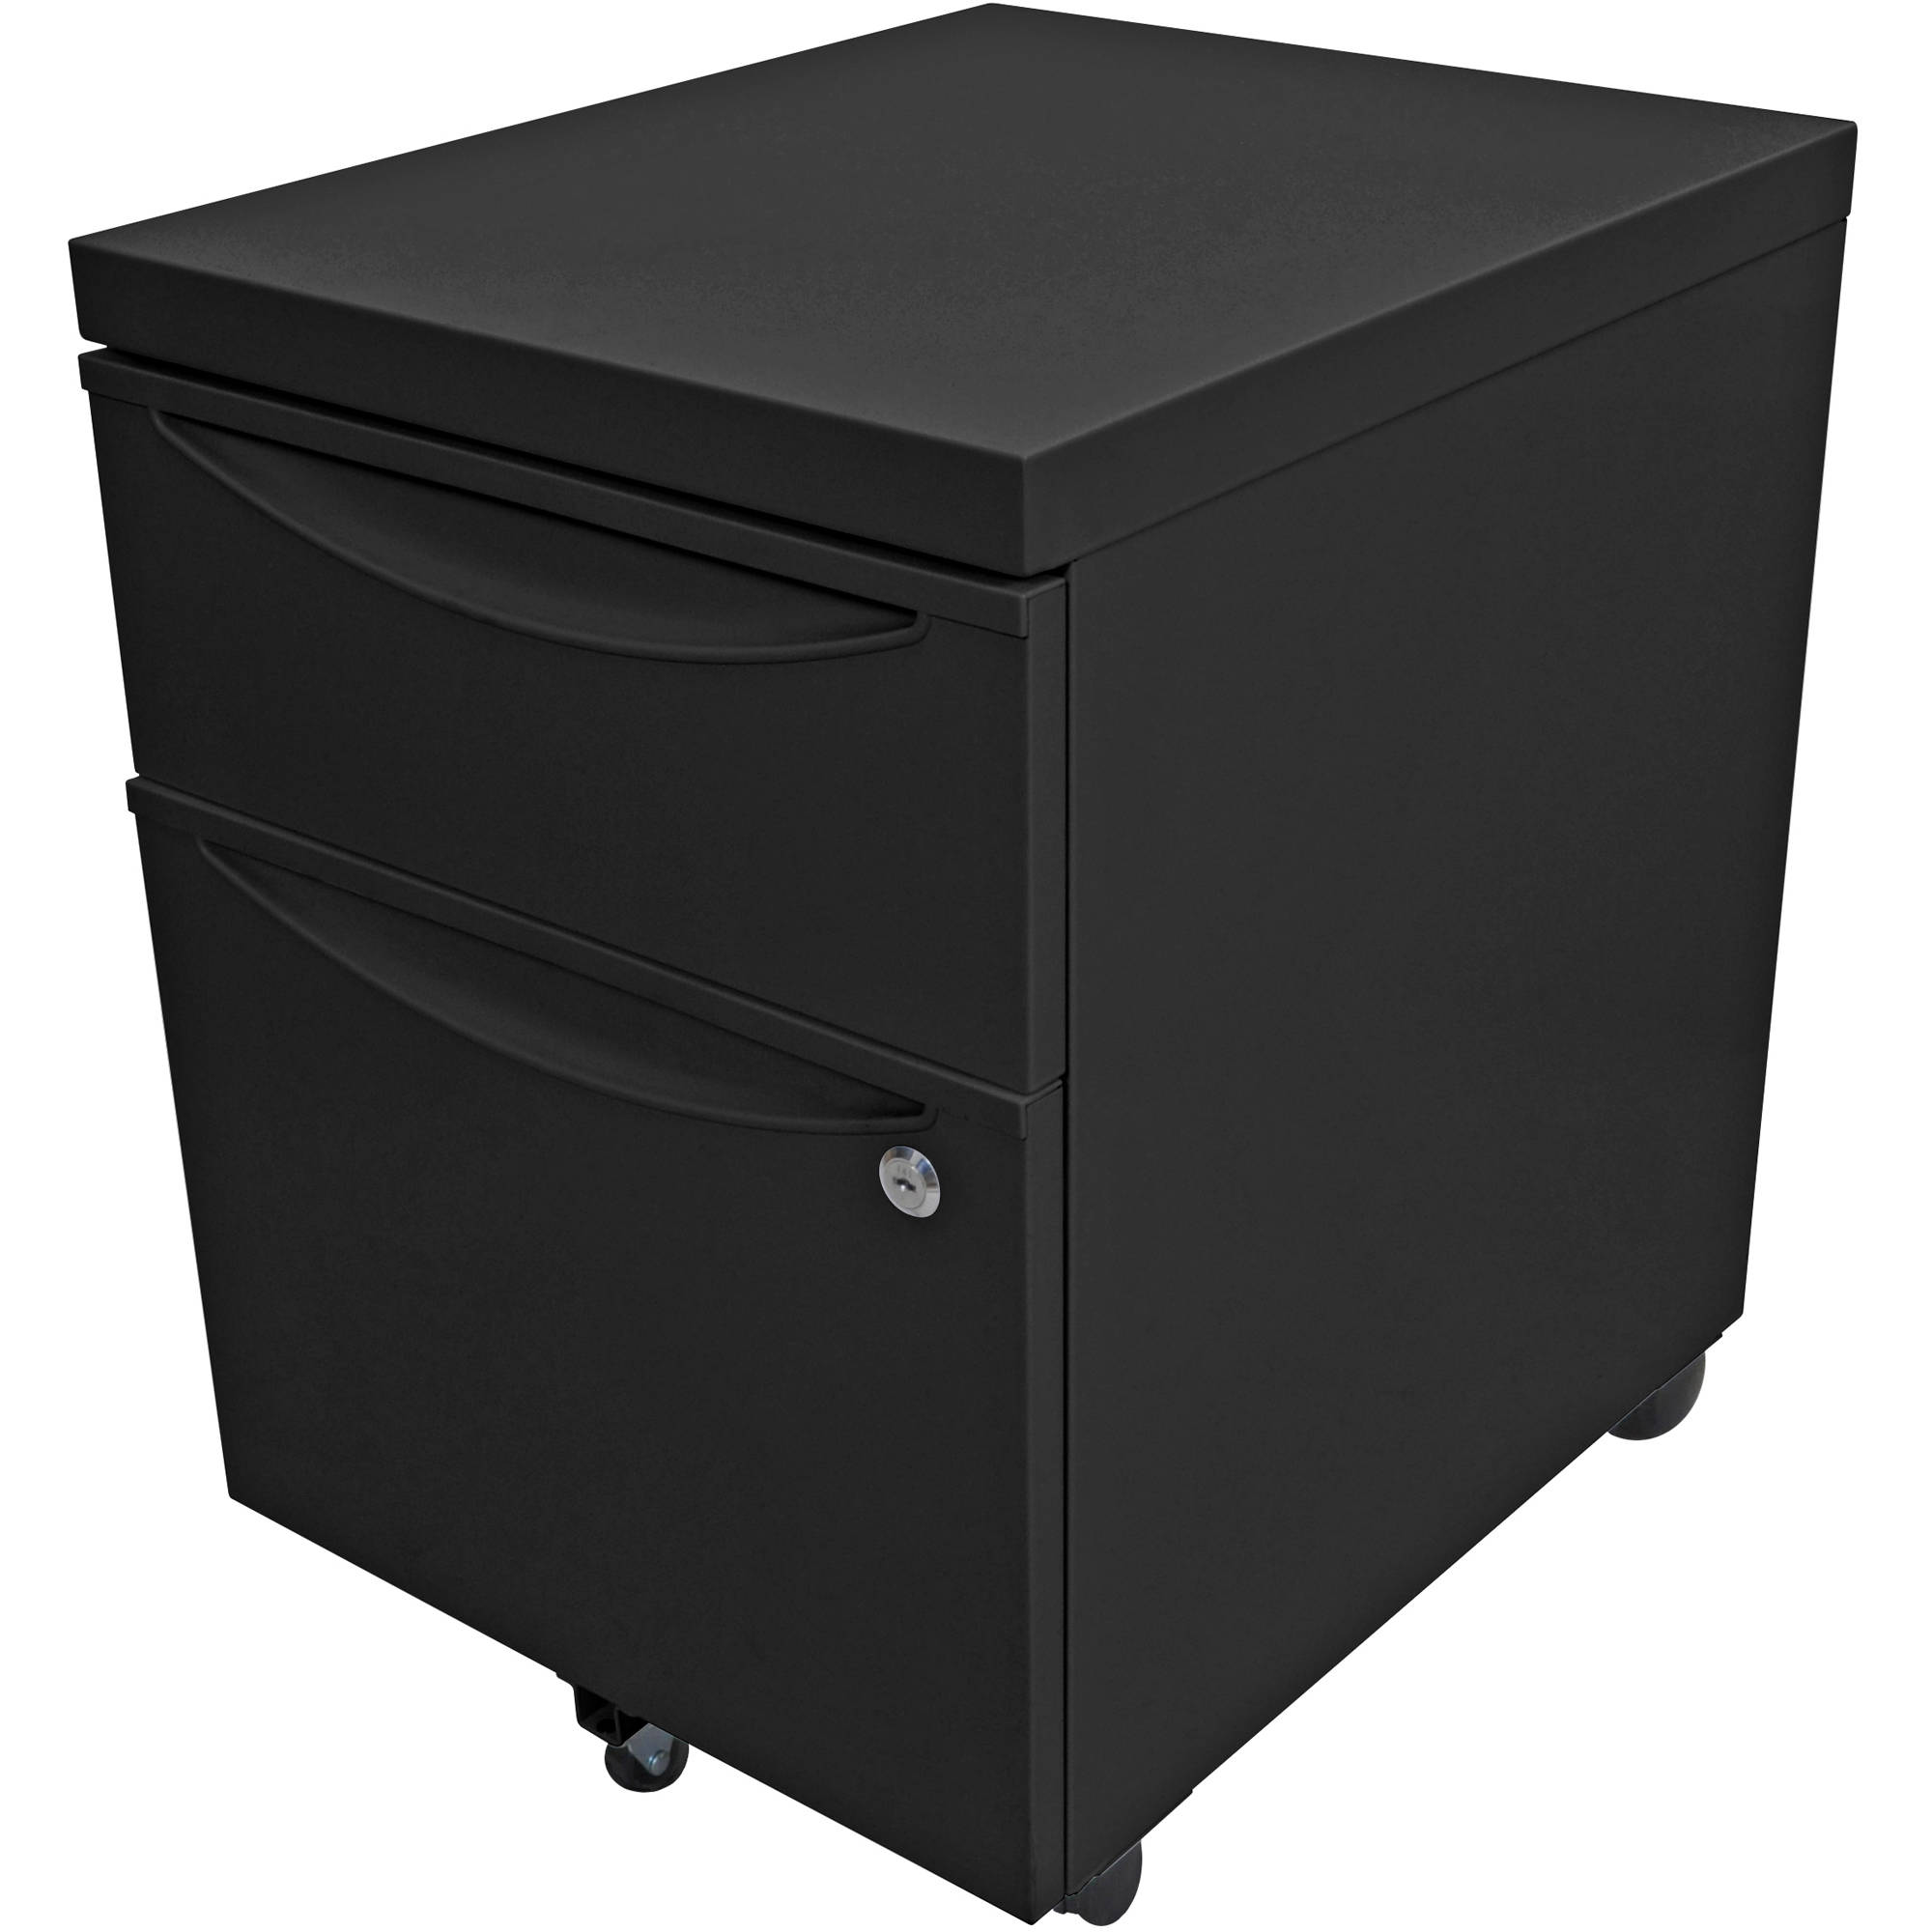 Luxor Mobile Pedestal File Cabinet With Locking Drawer (Black)